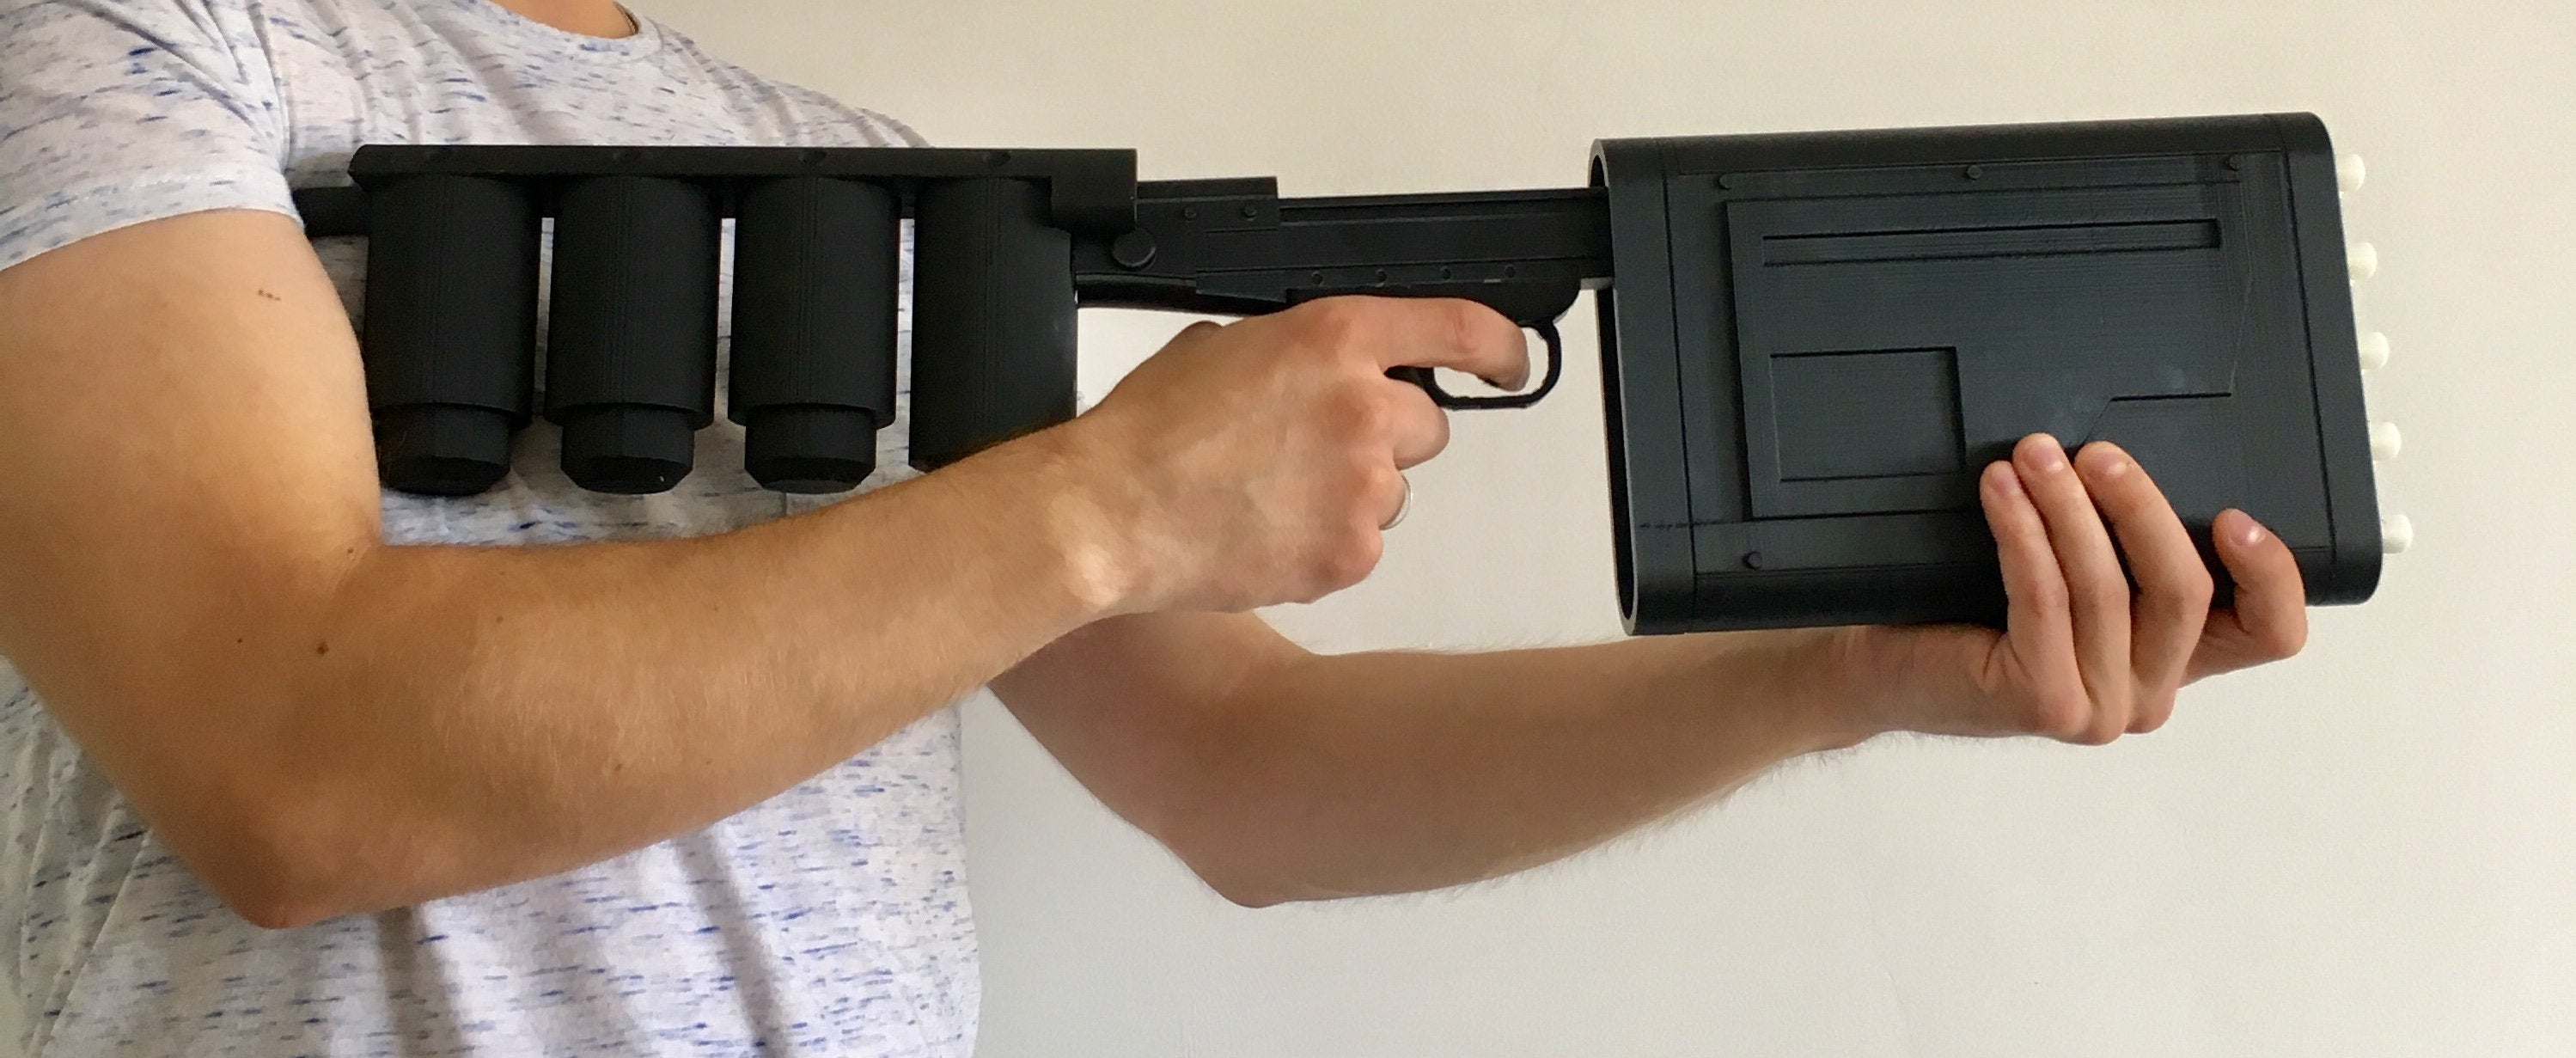 EMP GUN - The Dark Knight Rises, Batman Replica Prop - 3D Printed